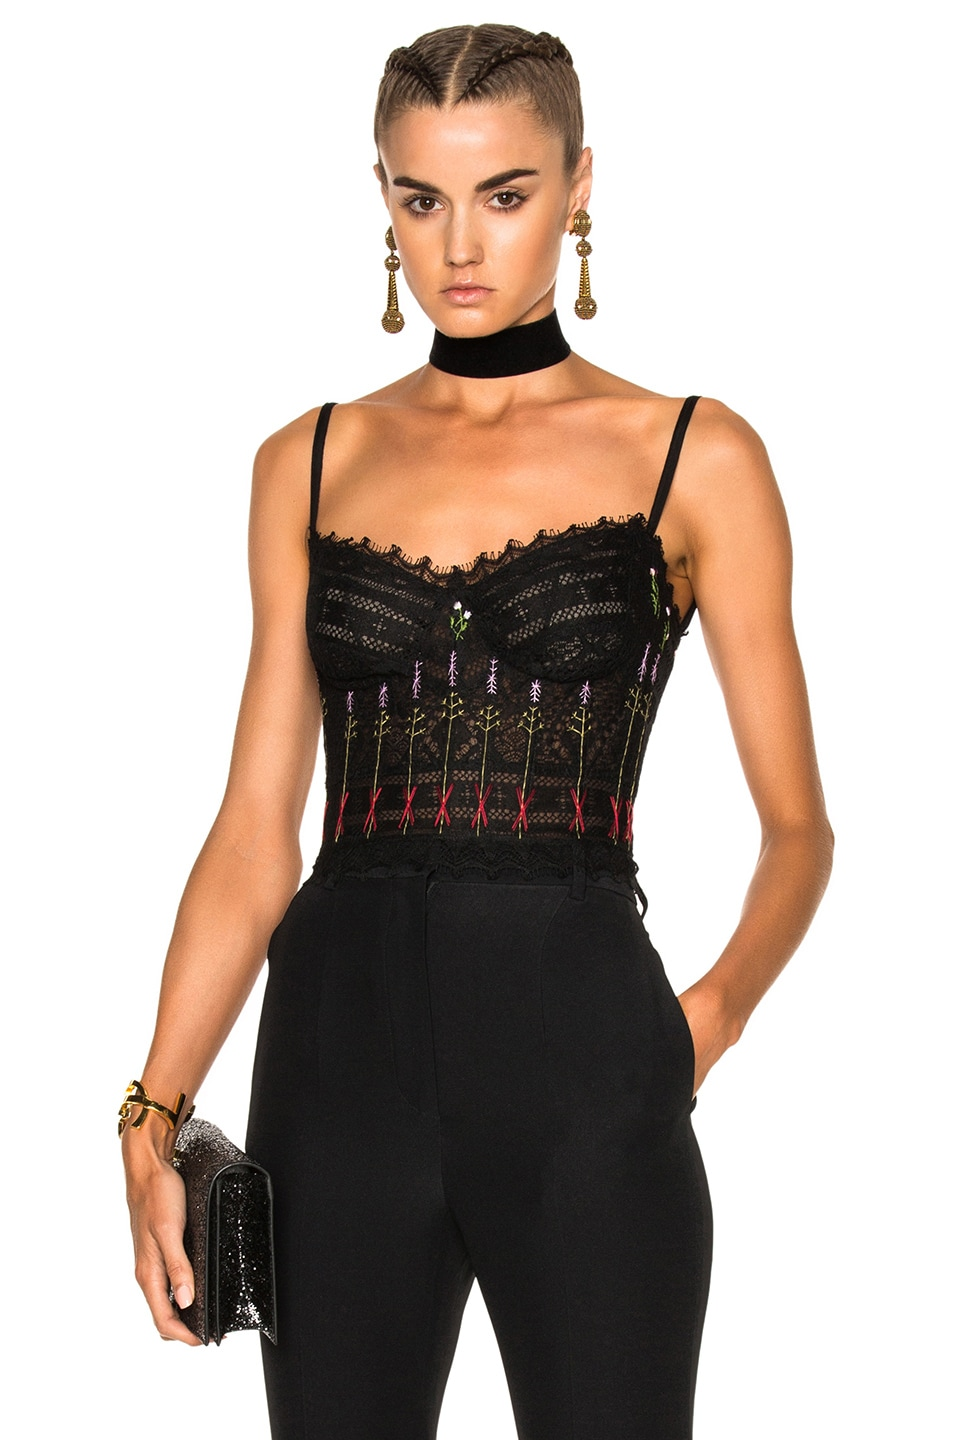 59fb94e8597df Image 1 of Alexander McQueen Lace Bustier in Black